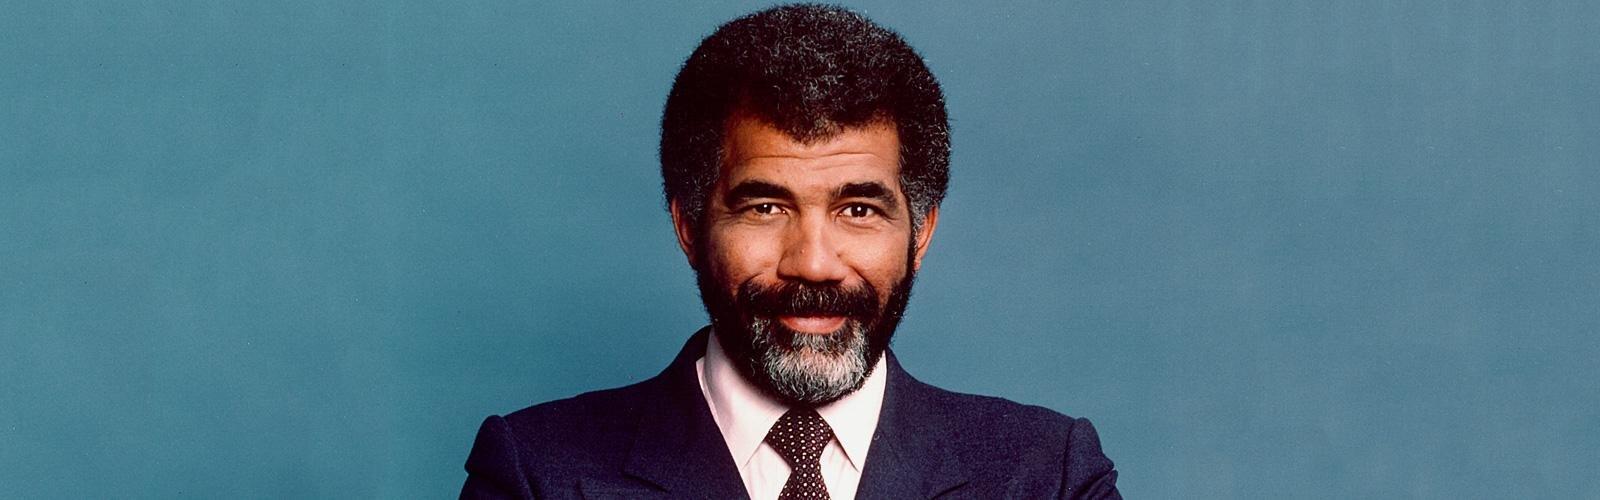 American television journalist Ed Bradley, 1981. Photo by CBS Photo Archive/Getty Images